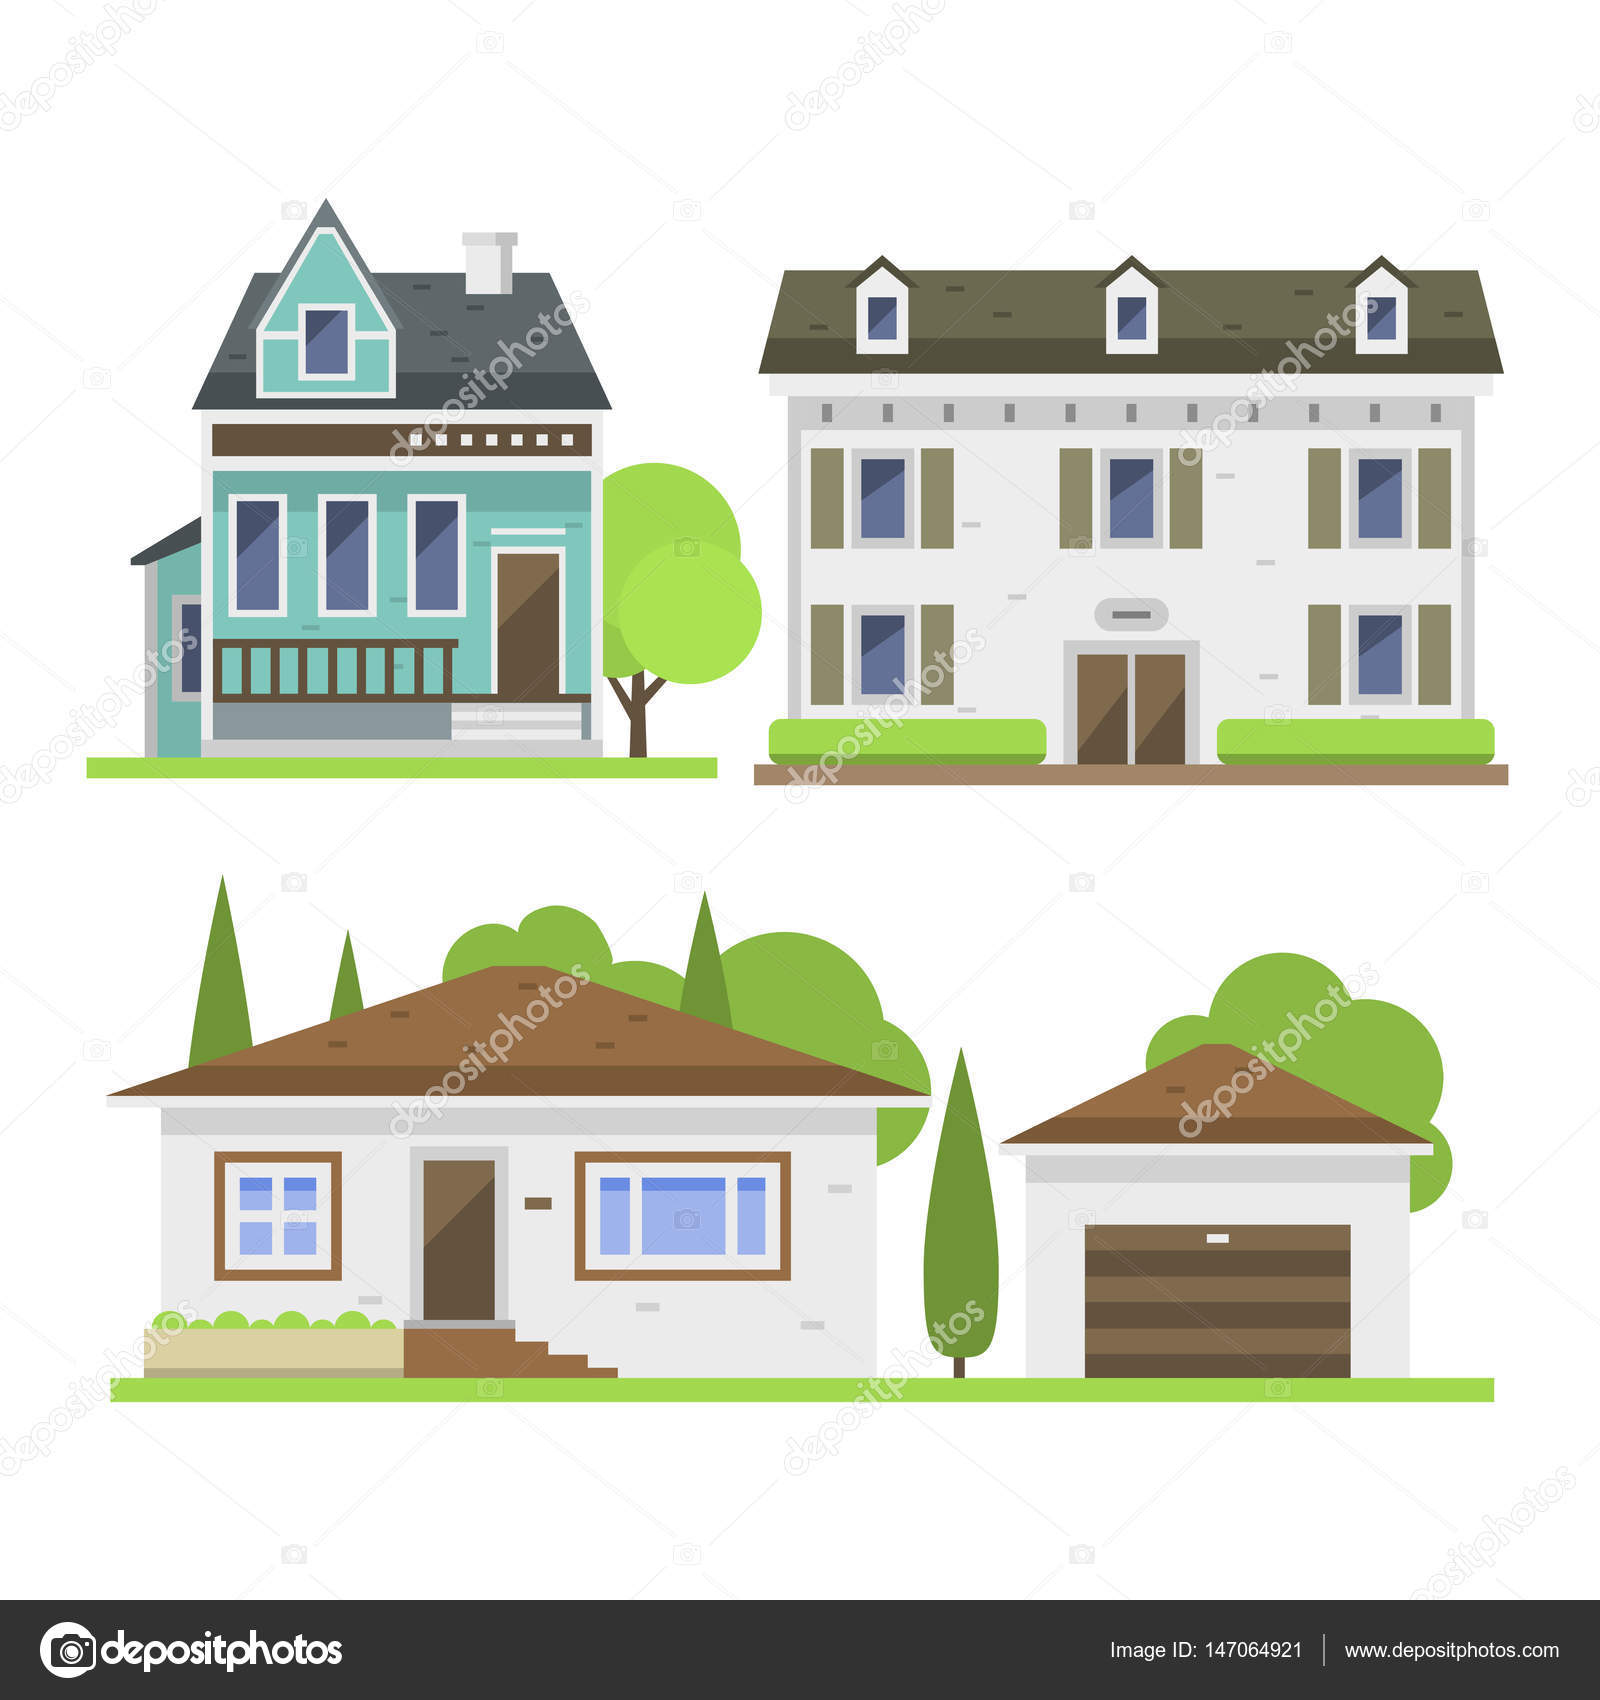 Cute Colorful Flat Style House Village Symbol Real Estate Cottage And Home  Design Residential Colorful Building Construction Vector Illustration.